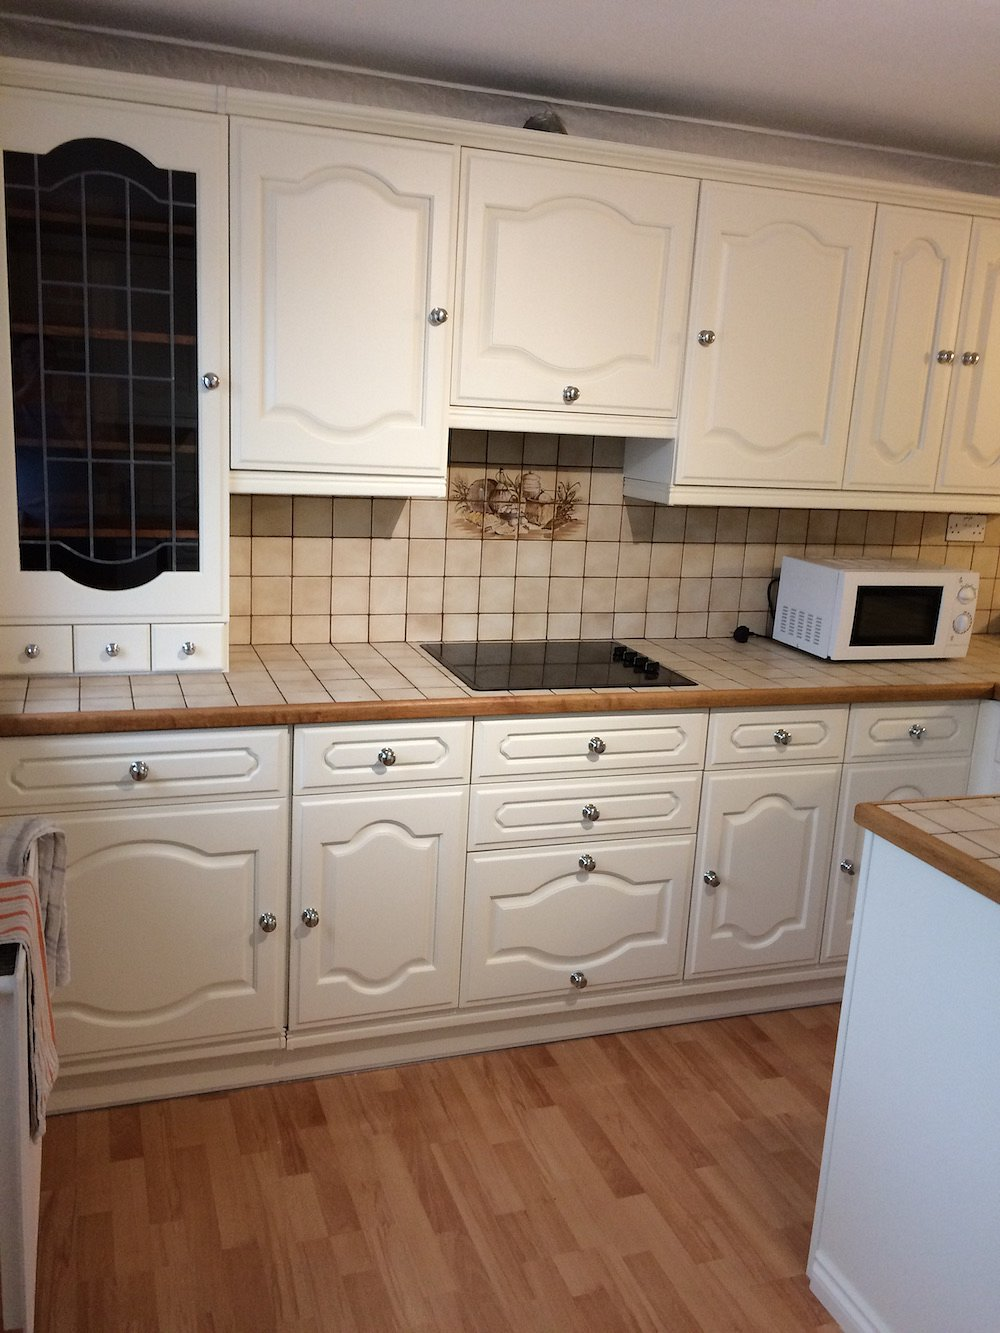 Bringing an old kitchen back to life in Romiley - After